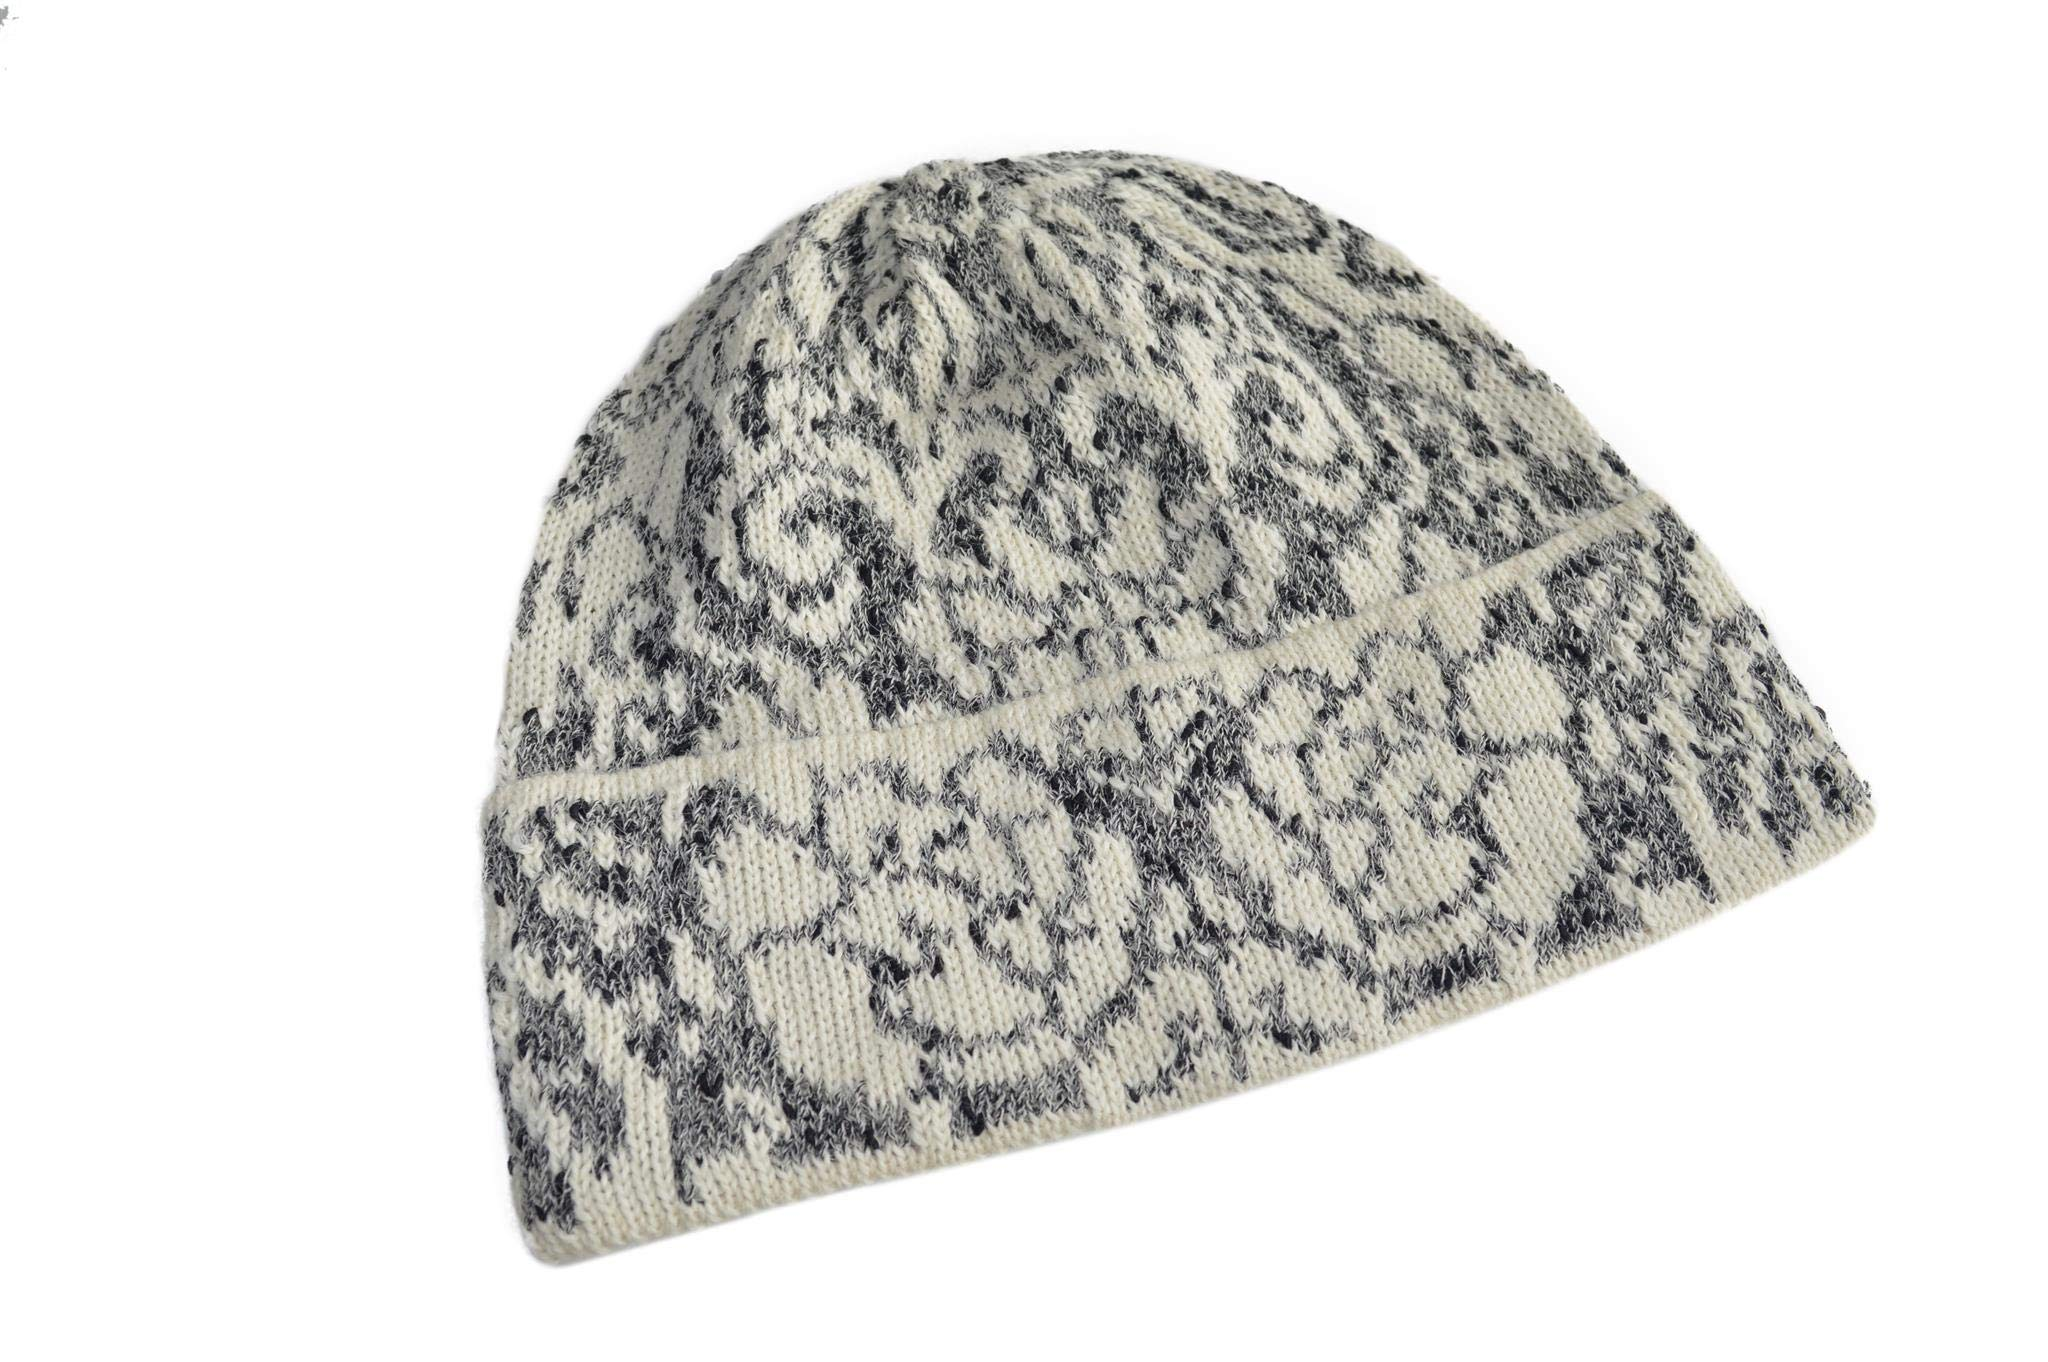 Invisible World Women's 100% Alpaca Wool Hat Knit Unisex Beanie Winter Oxa Md by Invisible World (Image #3)